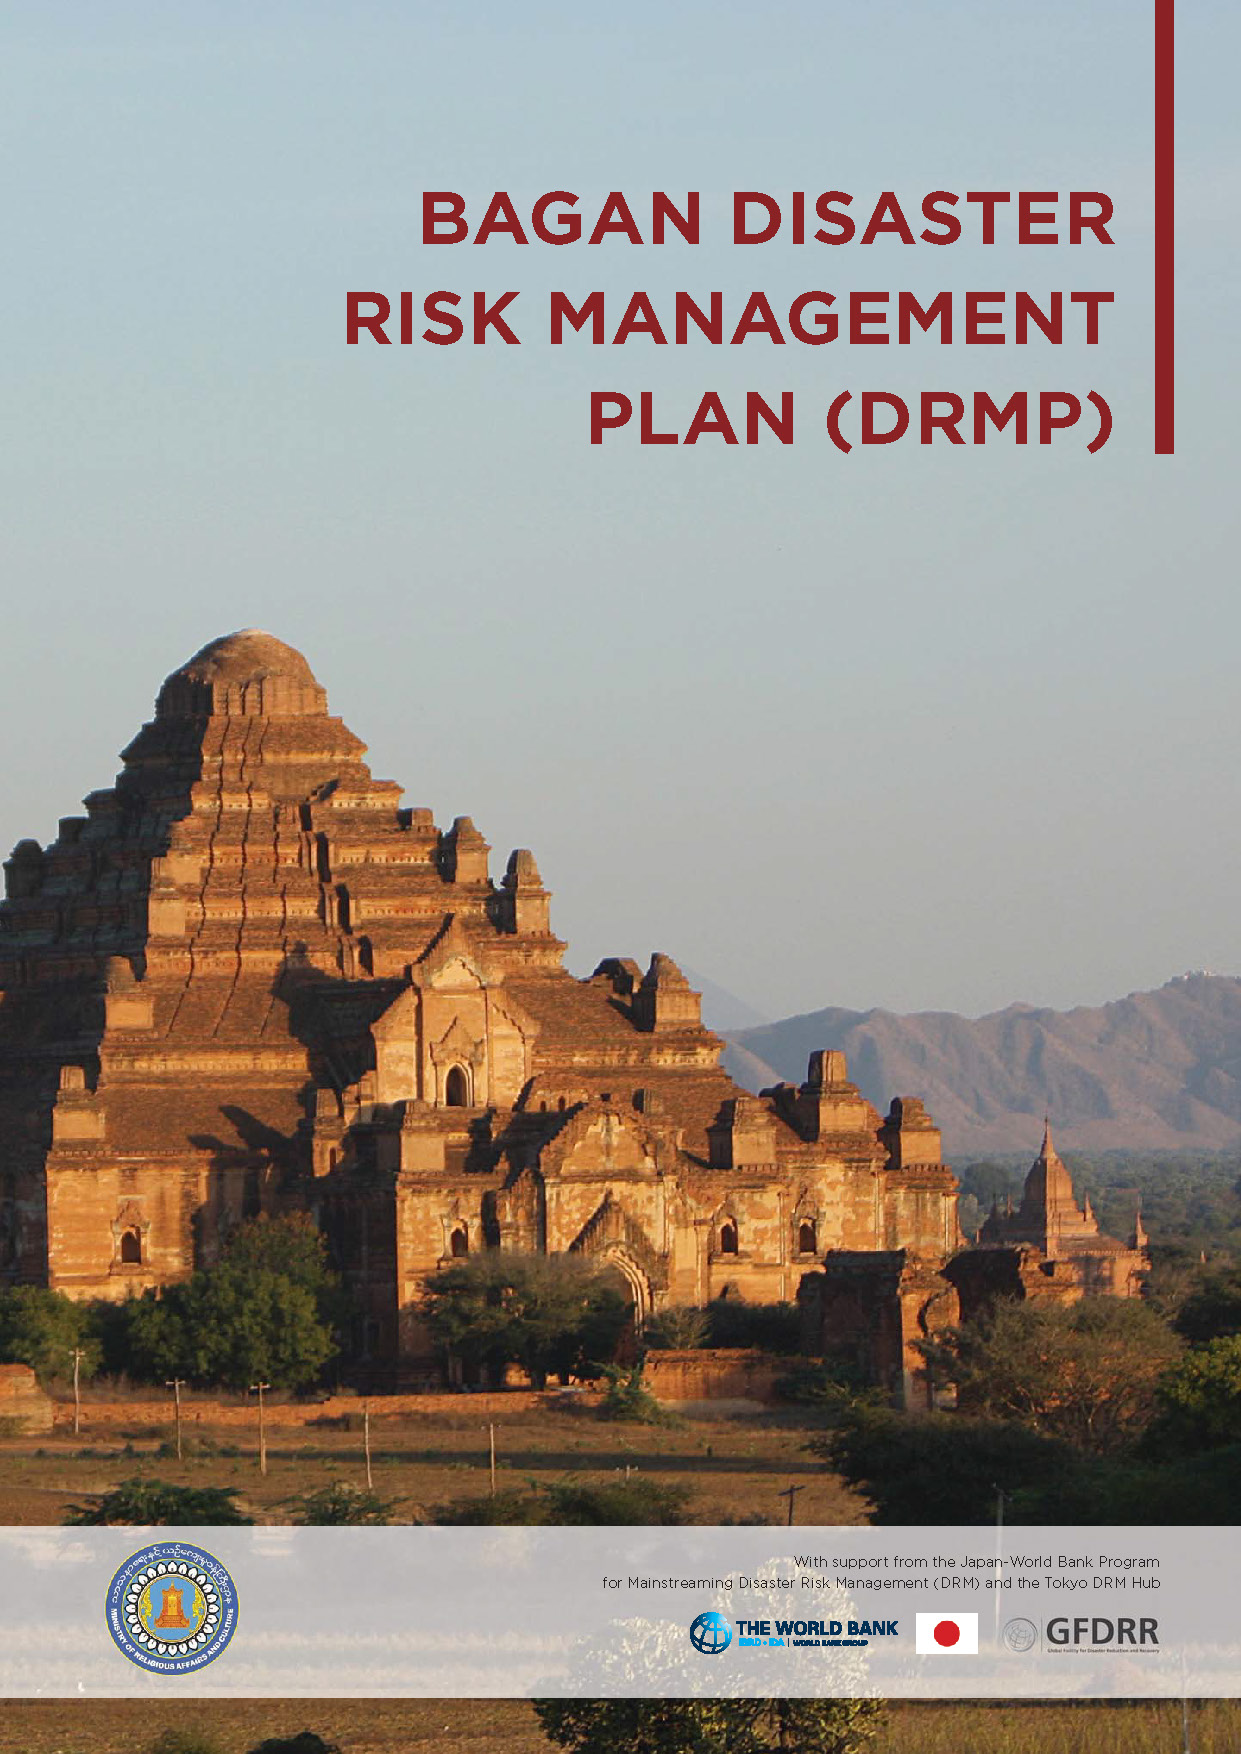 Bagan Disaster Risk Management Plan